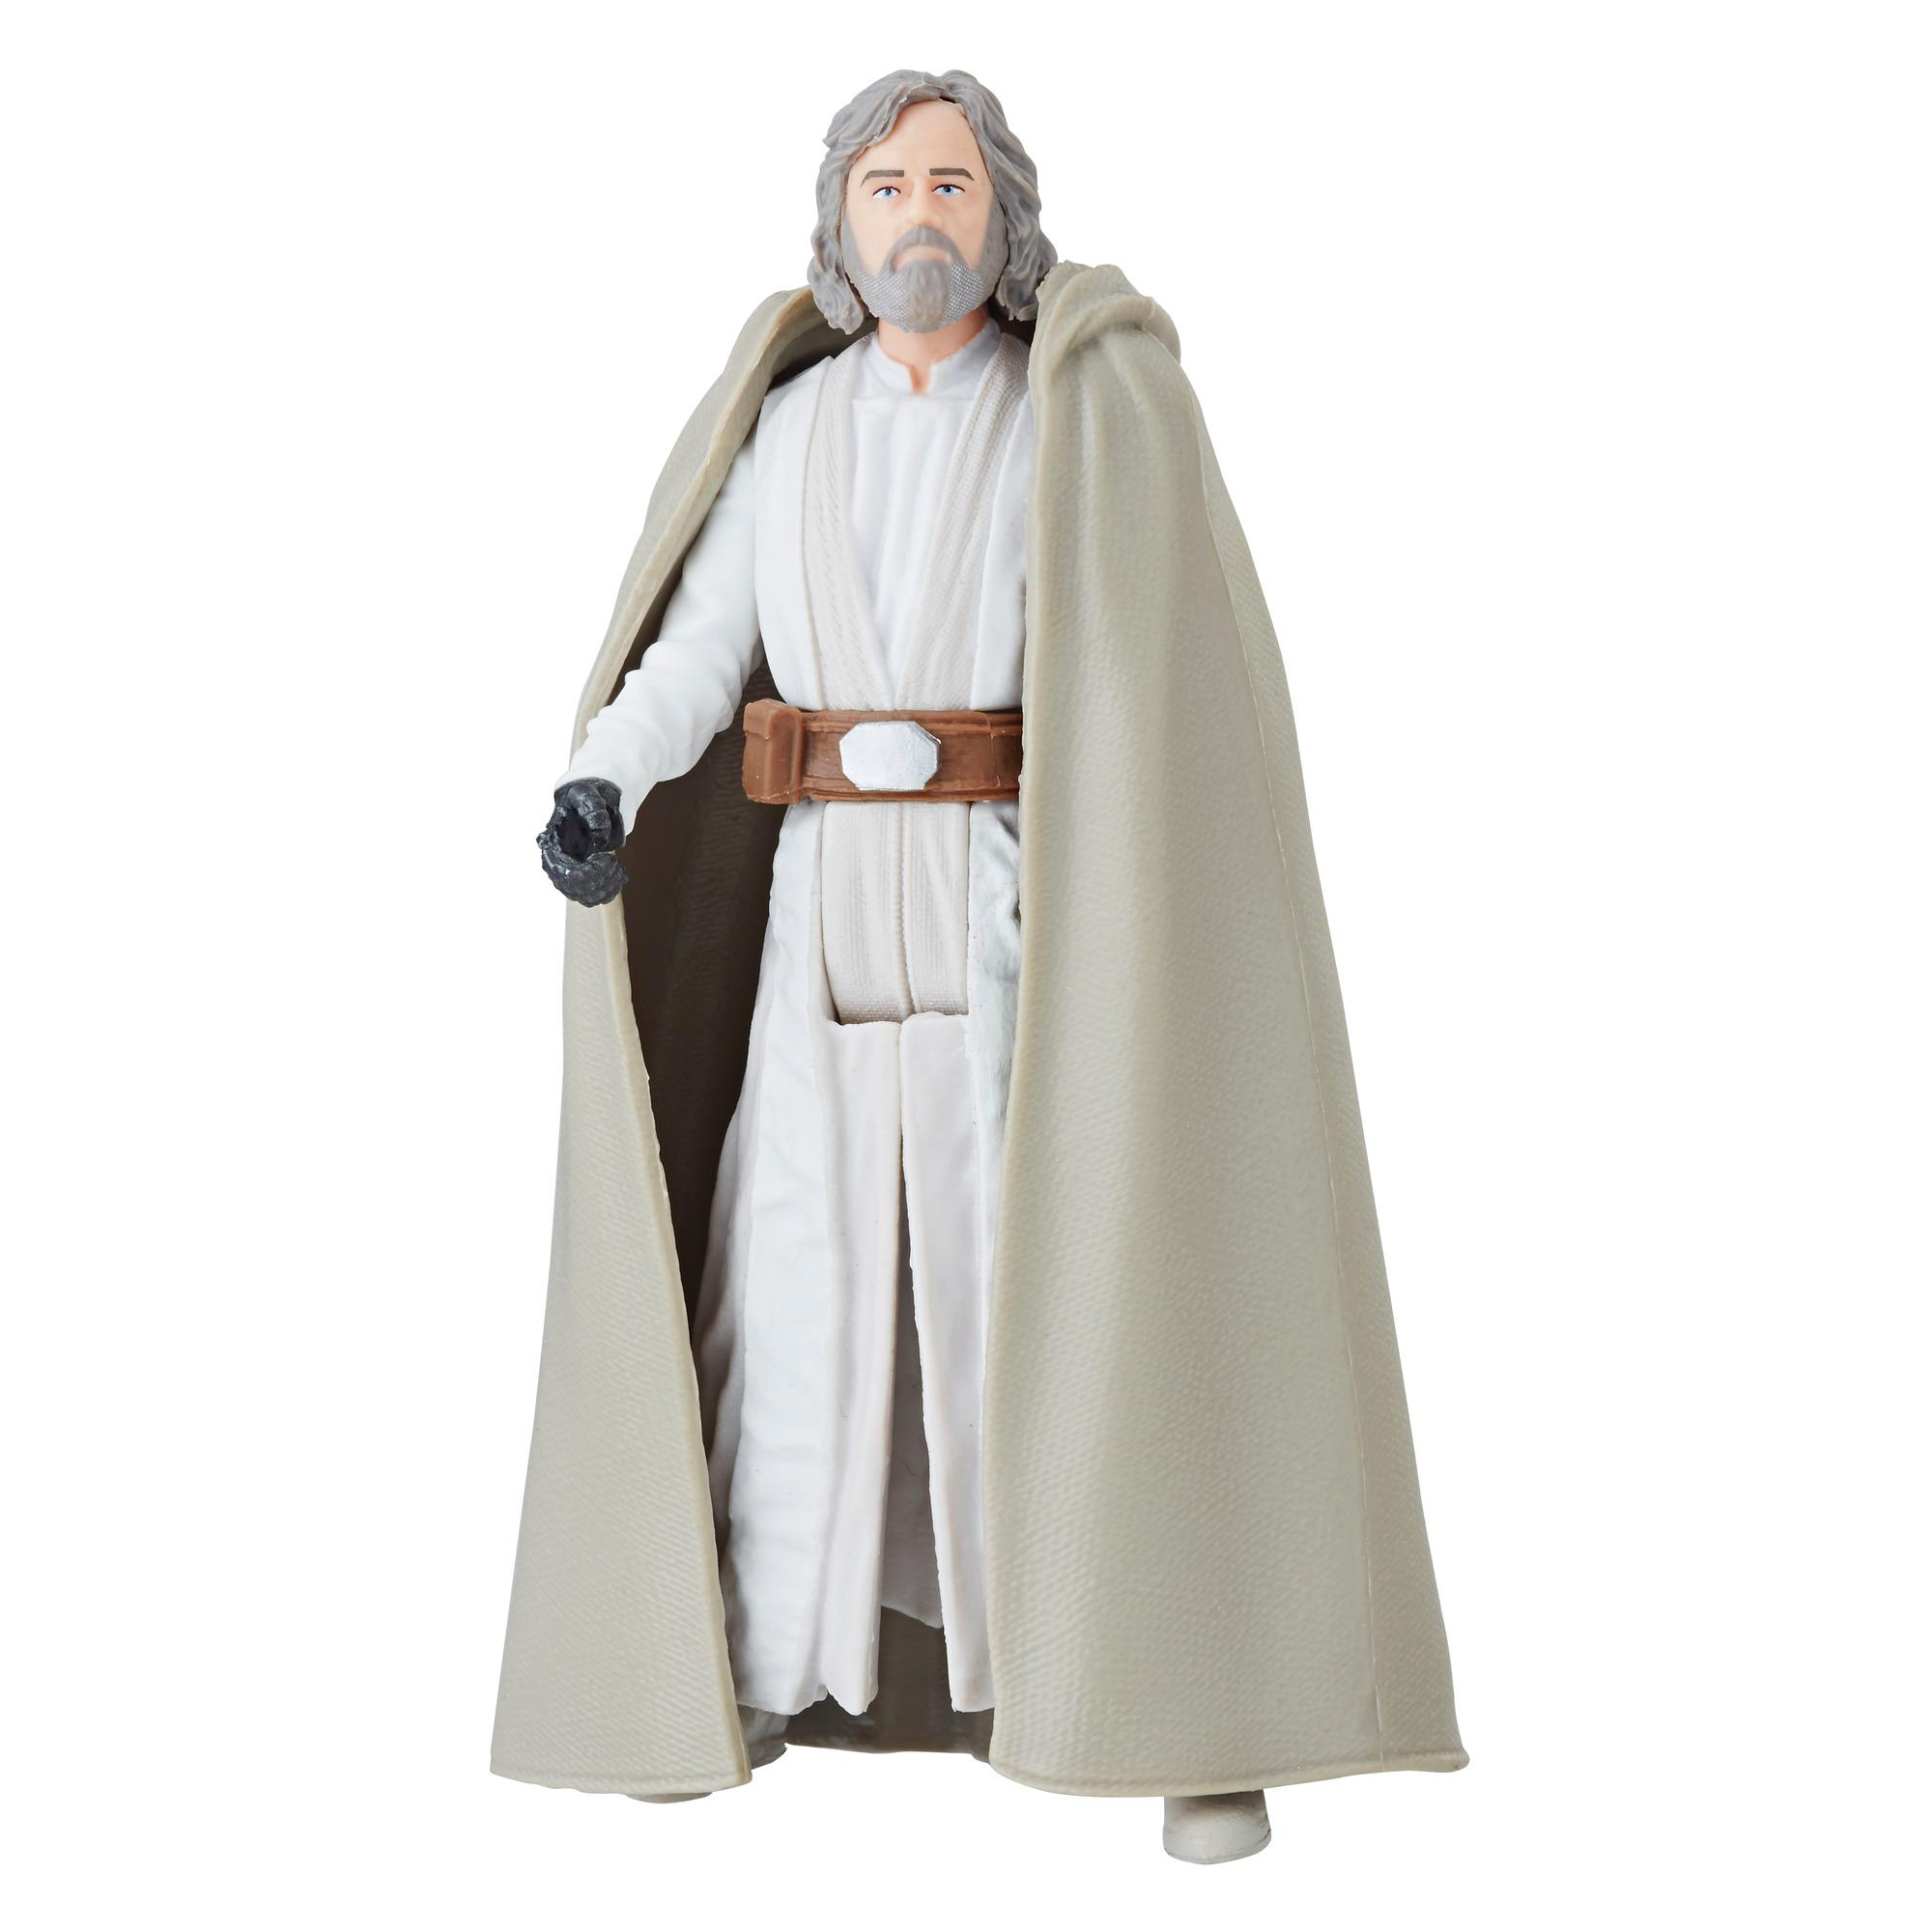 Star Wars Force Link 2.0 Luke Skywalker (Jedi Master) Figure